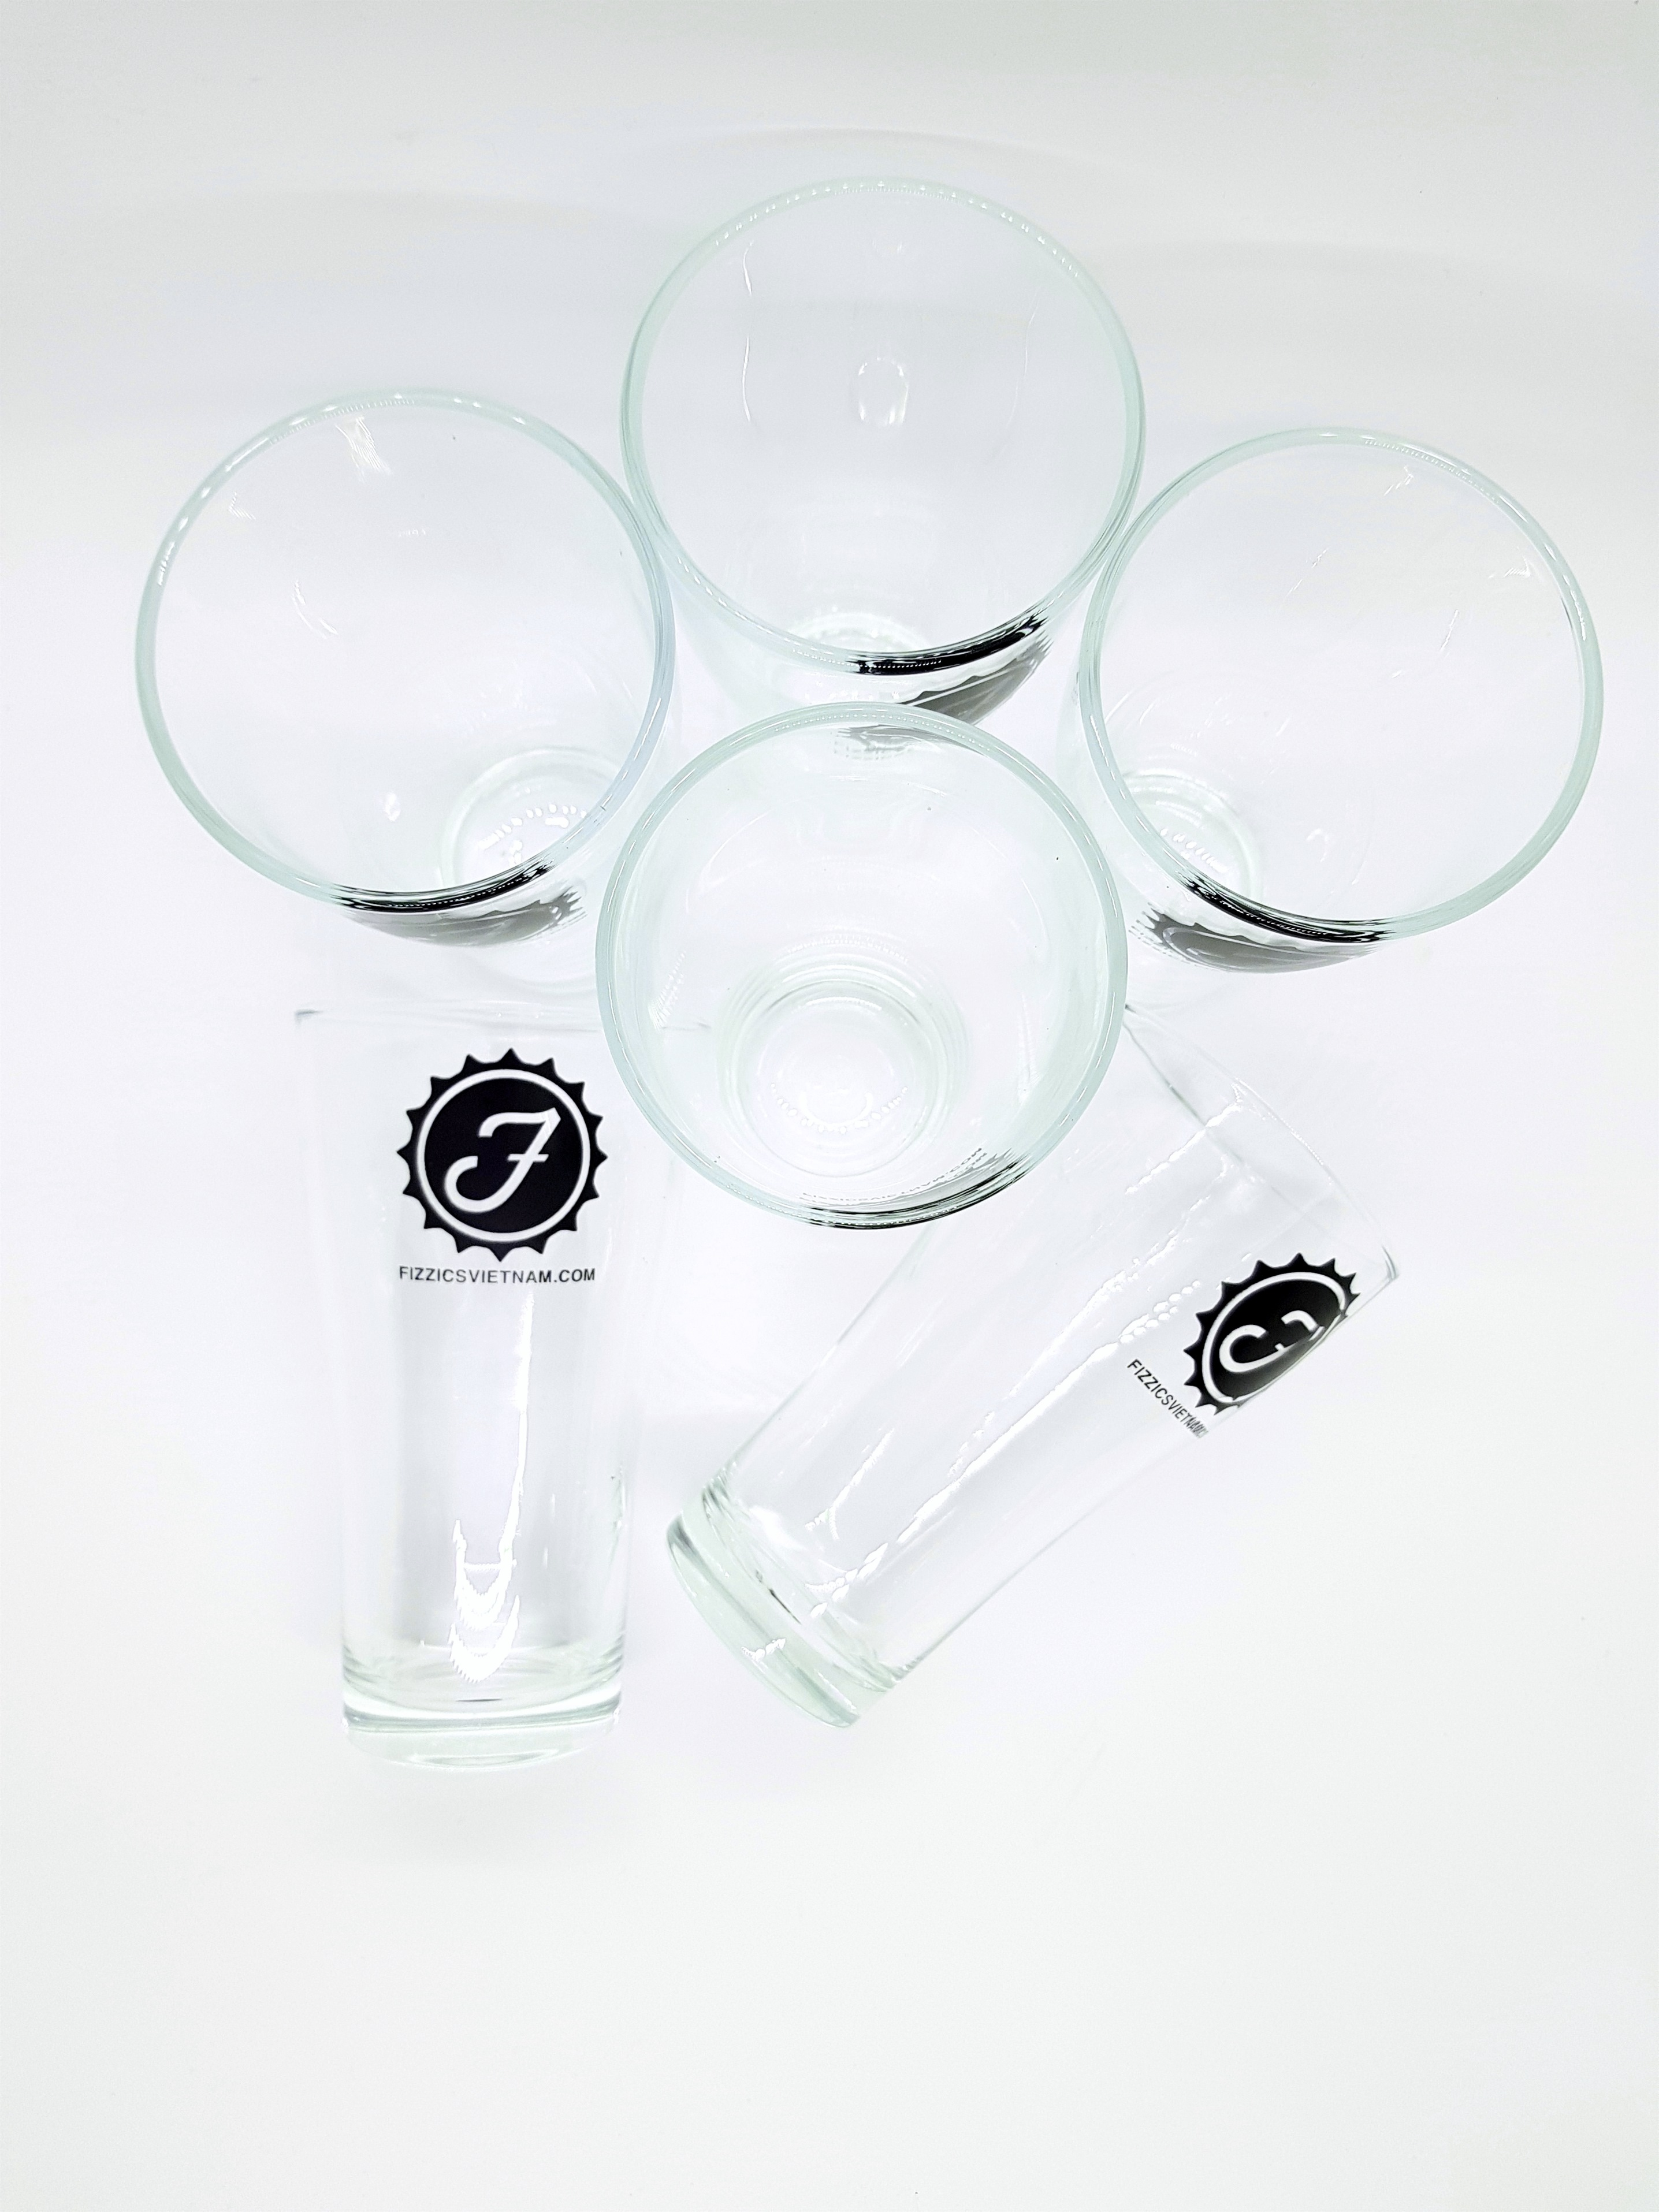 Bộ cốc uống bia cao cấp Luckyglass - Made in Thailand.